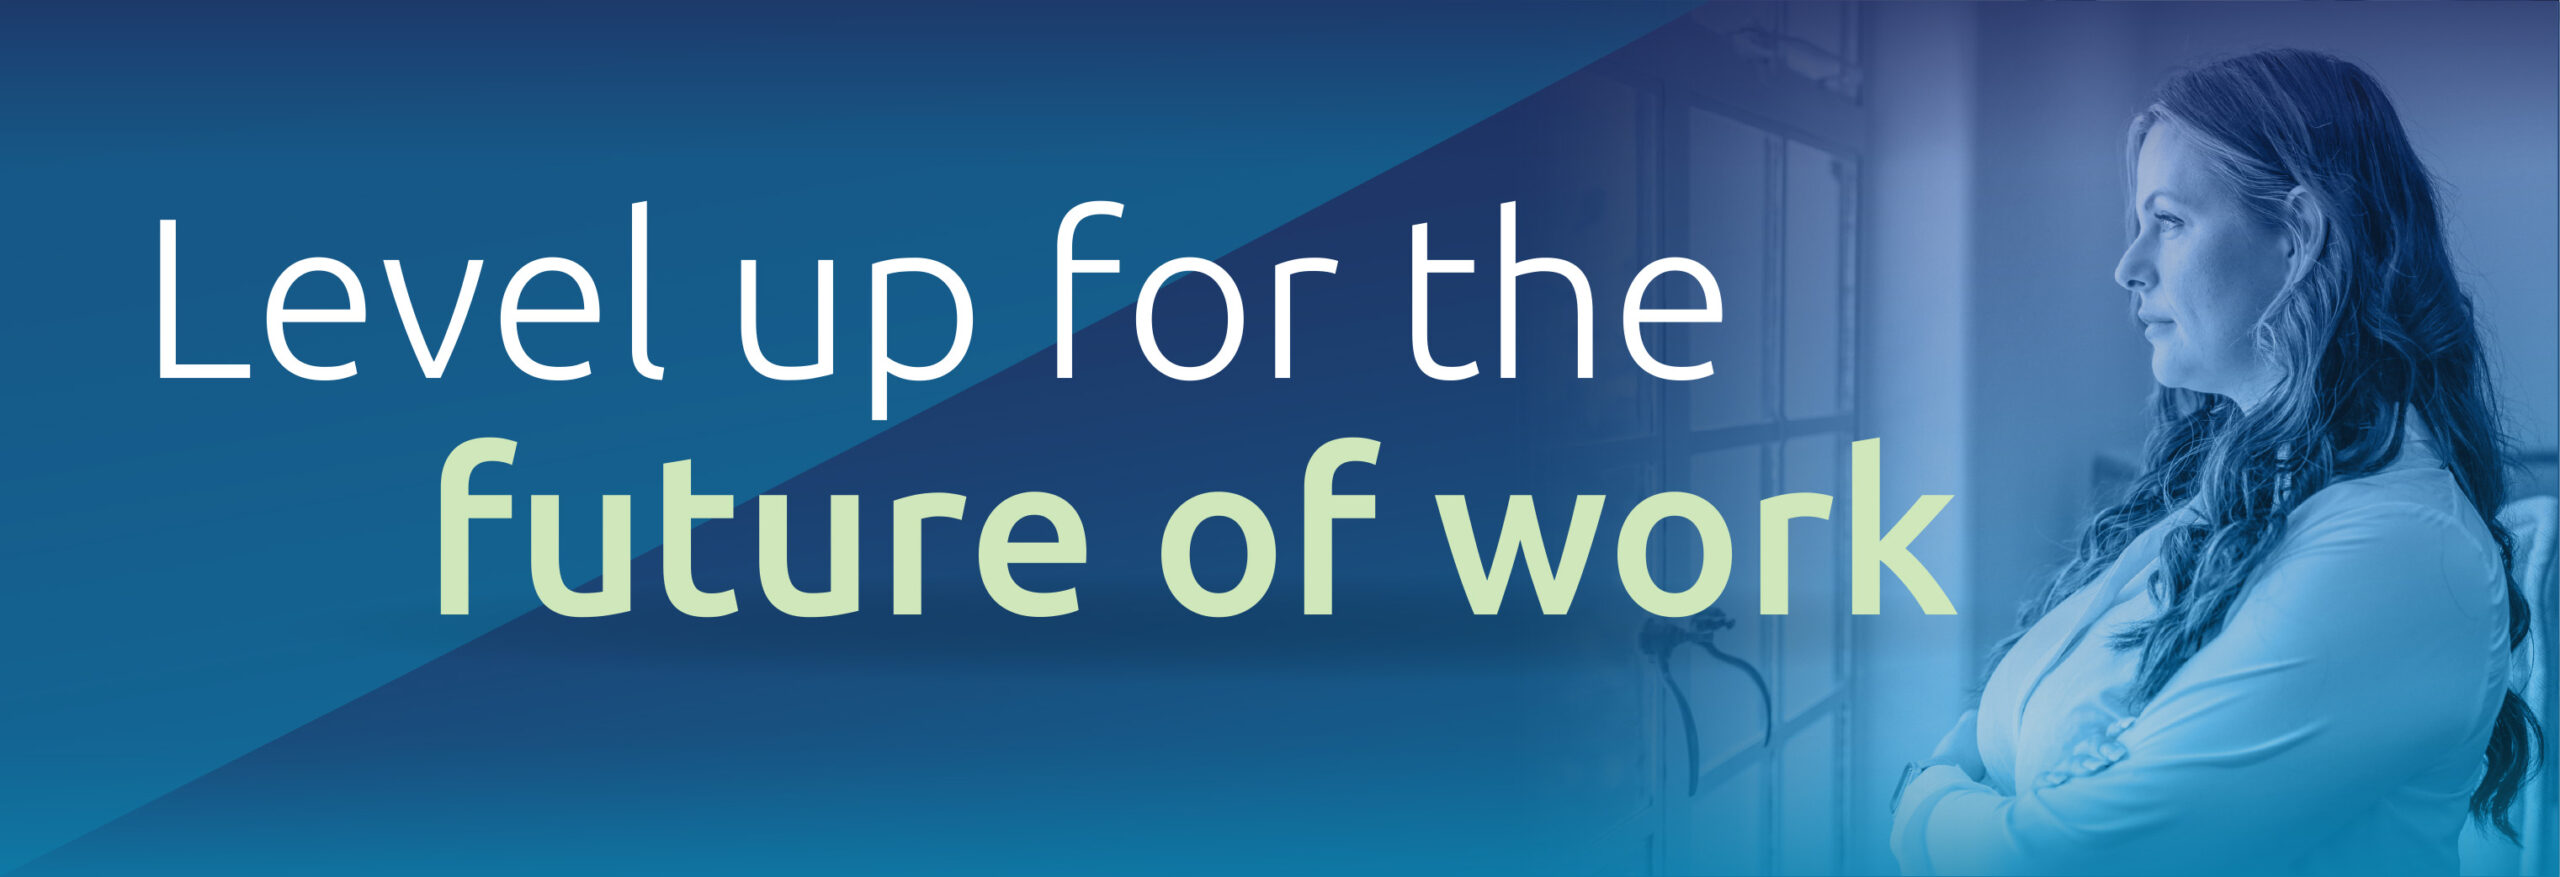 Level up for the future of work